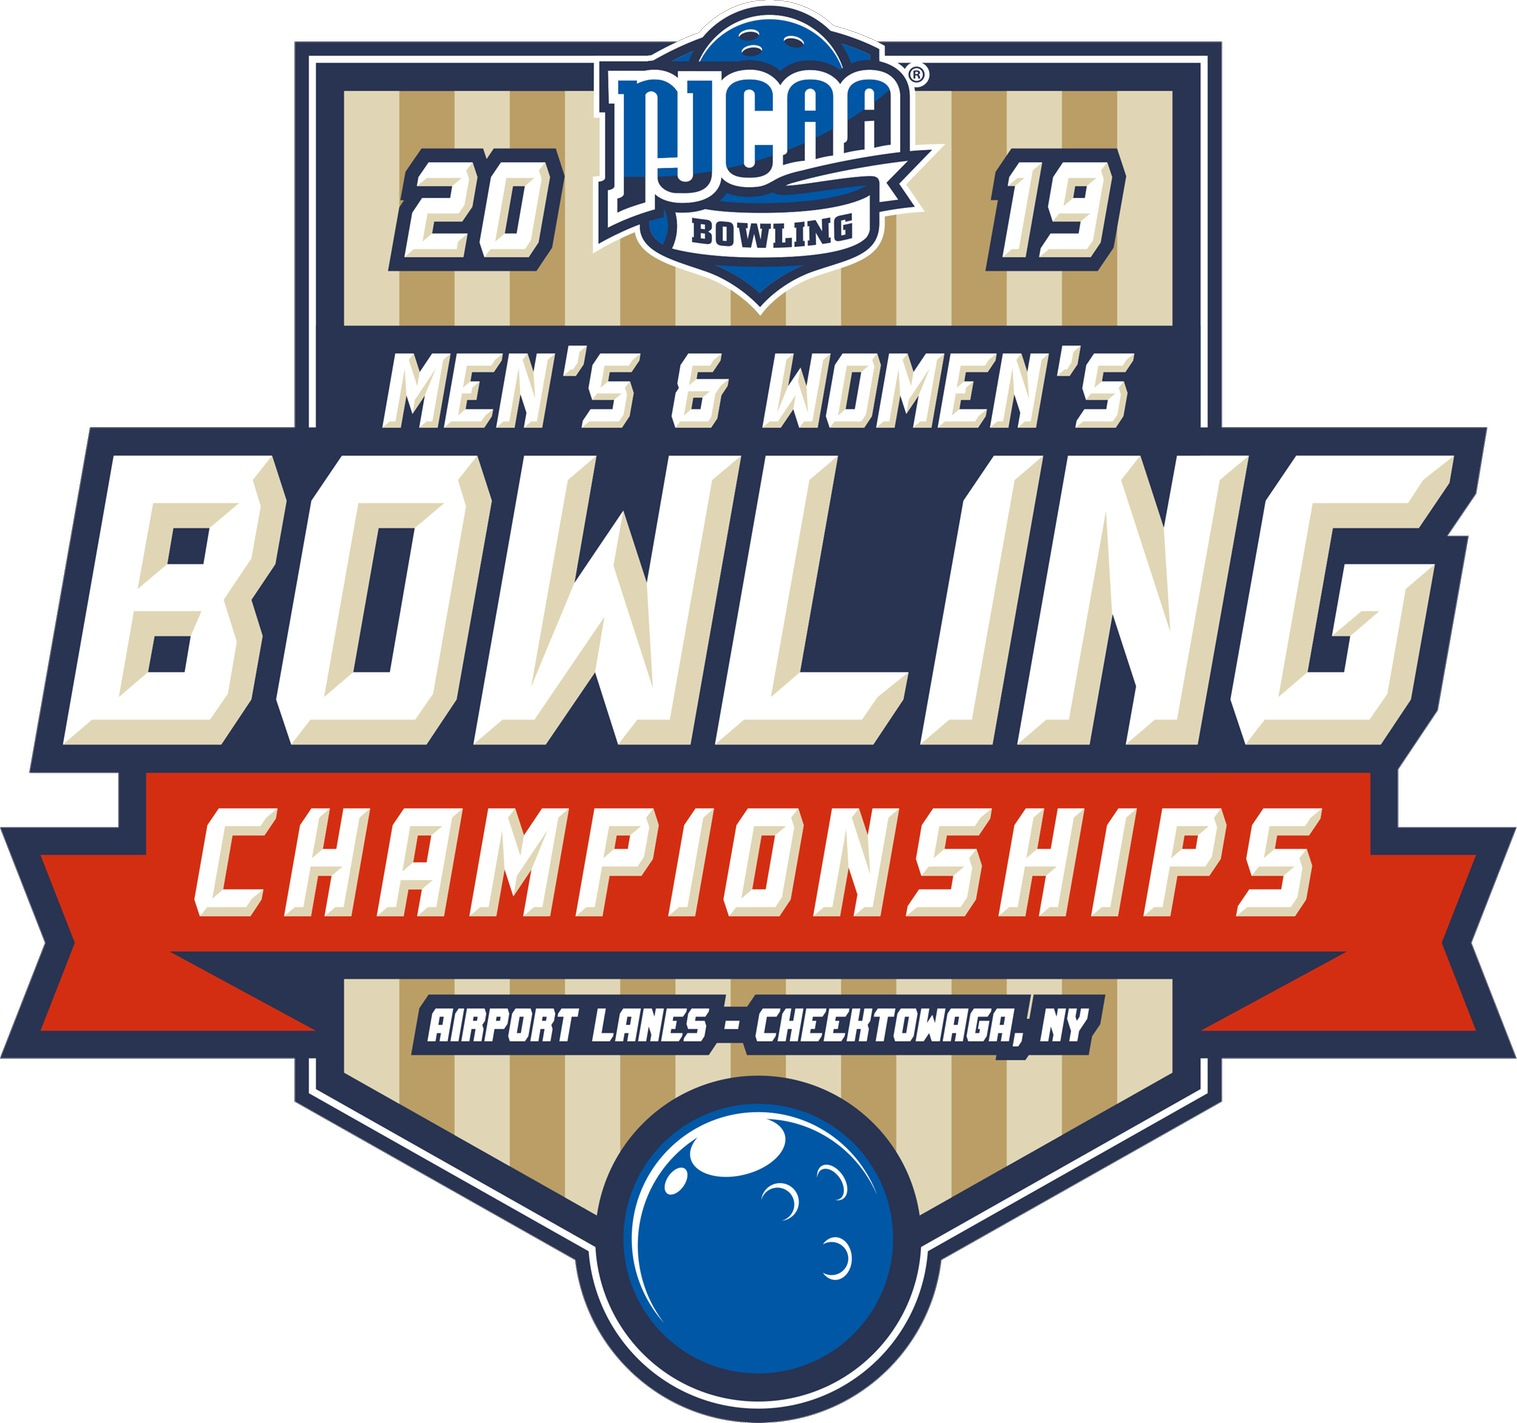 3e2d85a5 Both teams are headed to the NJCAA Division III Bowling National Tournament  in the Buffalo area February 28-March 2, 2019 Airport Lanes, 3754 Genesee  St, ...